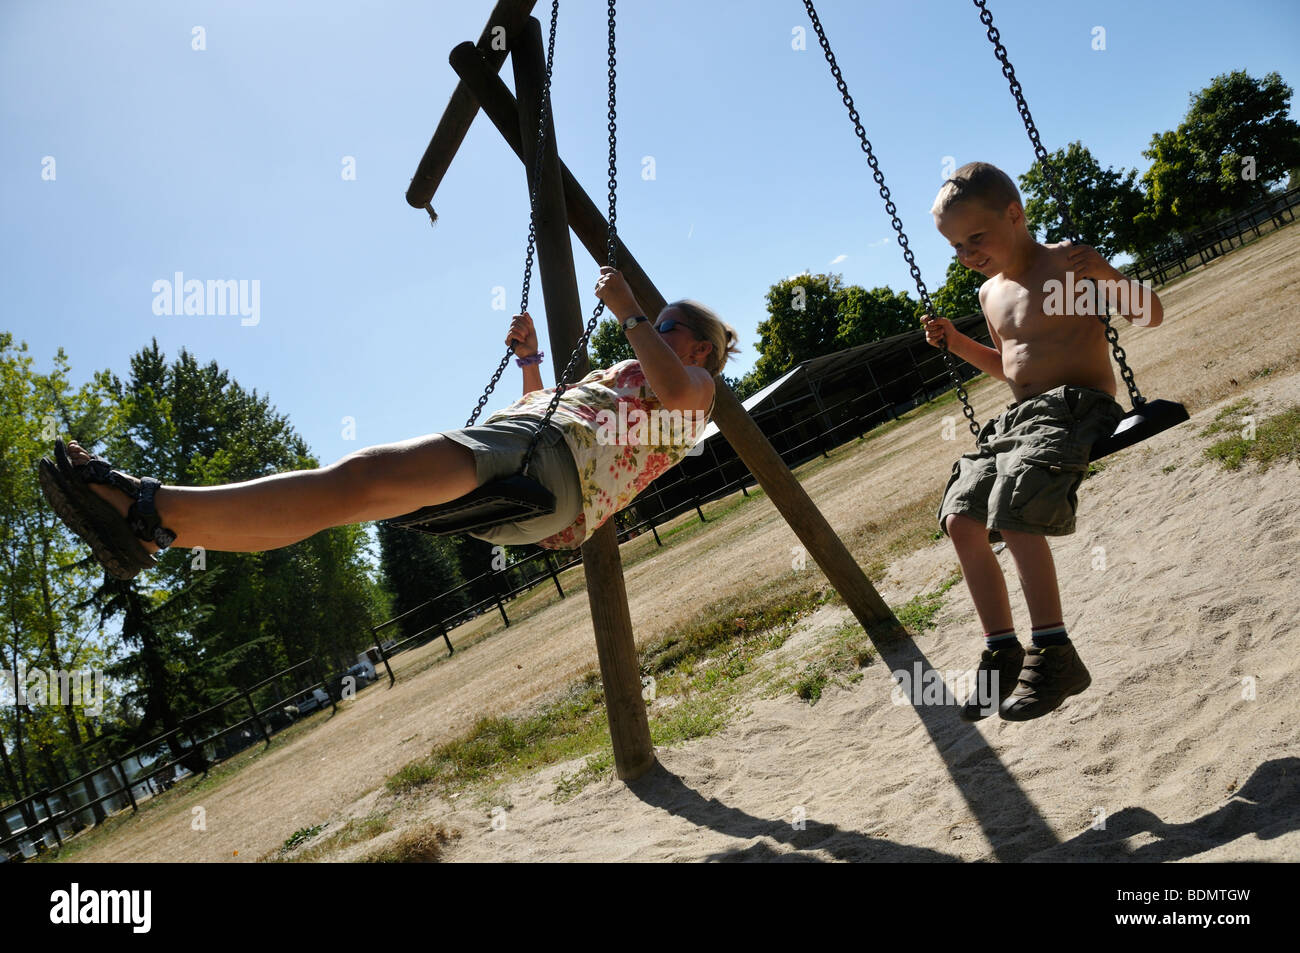 Stock photo of a mother and son playing on the swings on the playground. - Stock Image